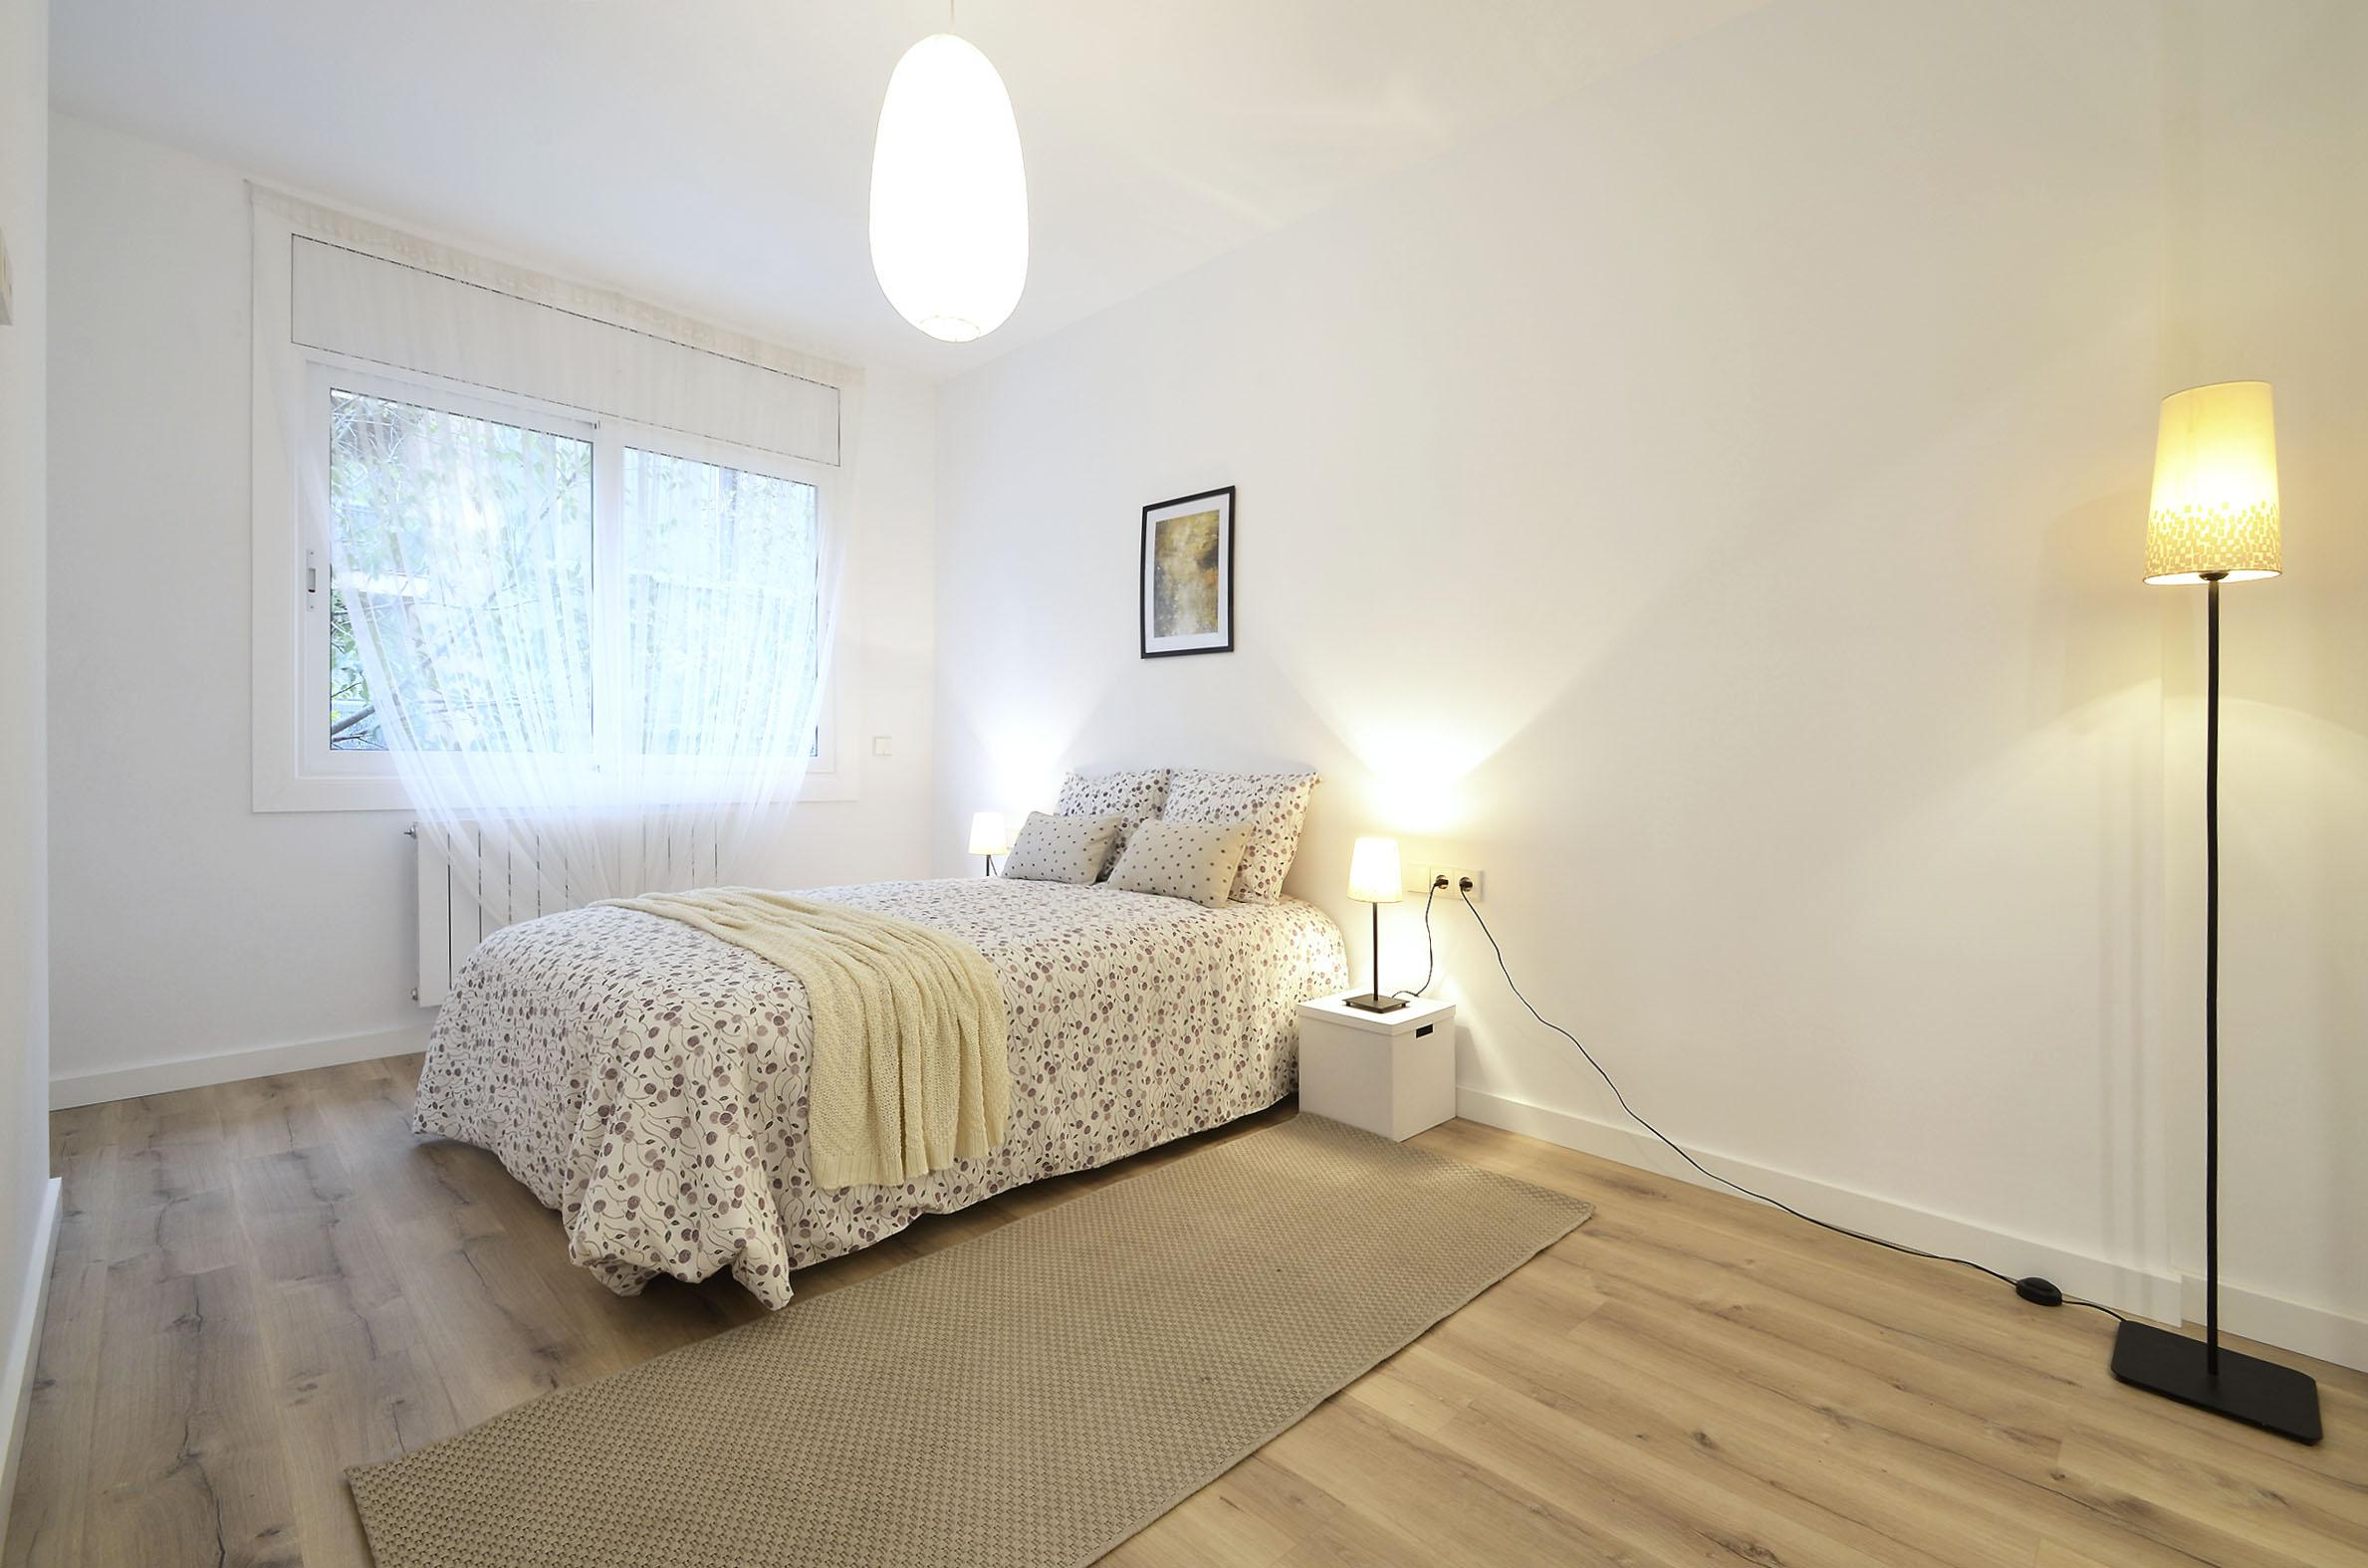 245687 Flat for sale in Eixample, Fort Pienc 2